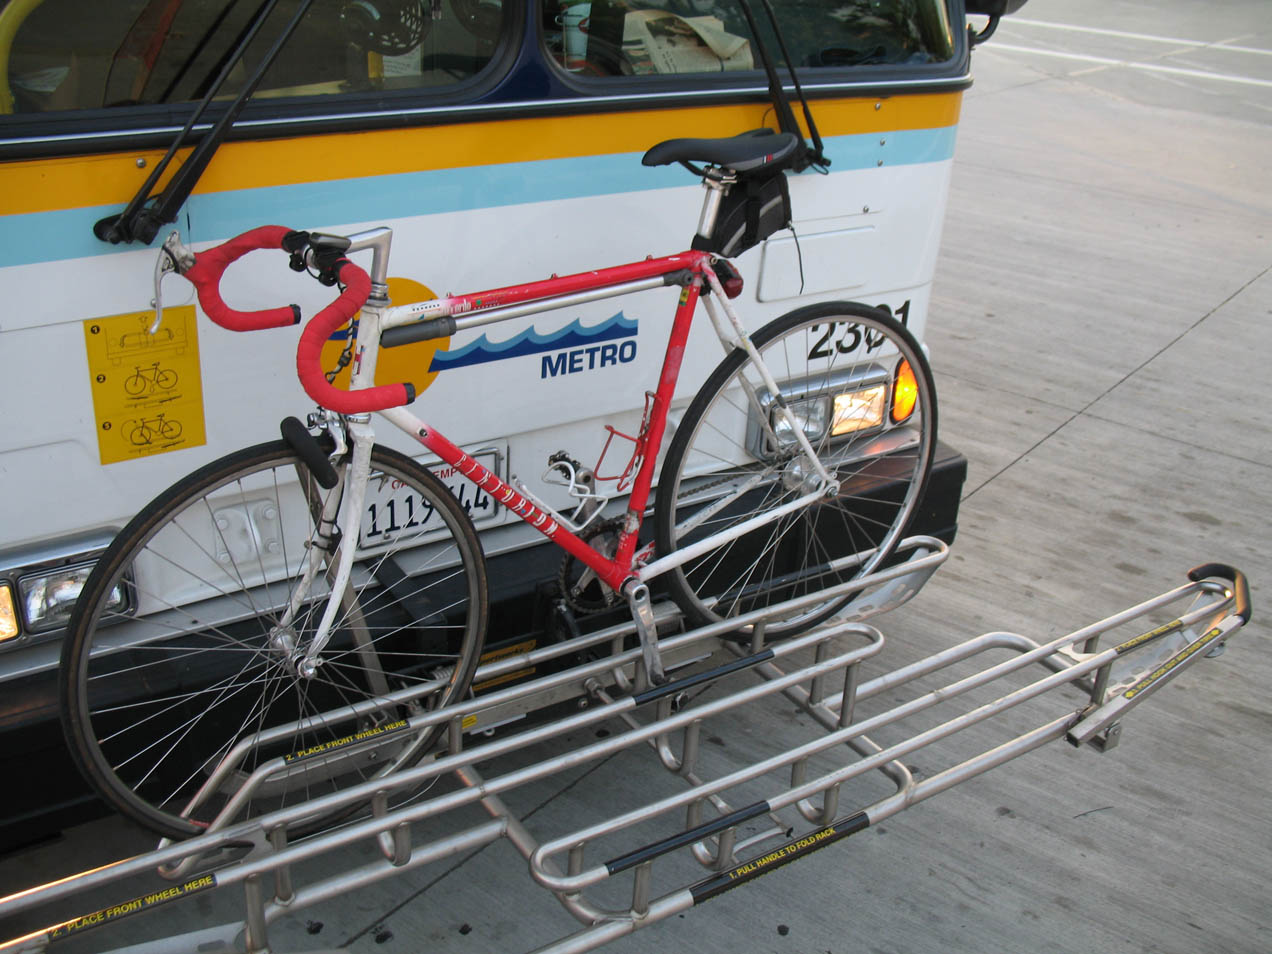 A bike rack on a bus in Santa Cruz, CA. Image from Wikimedia